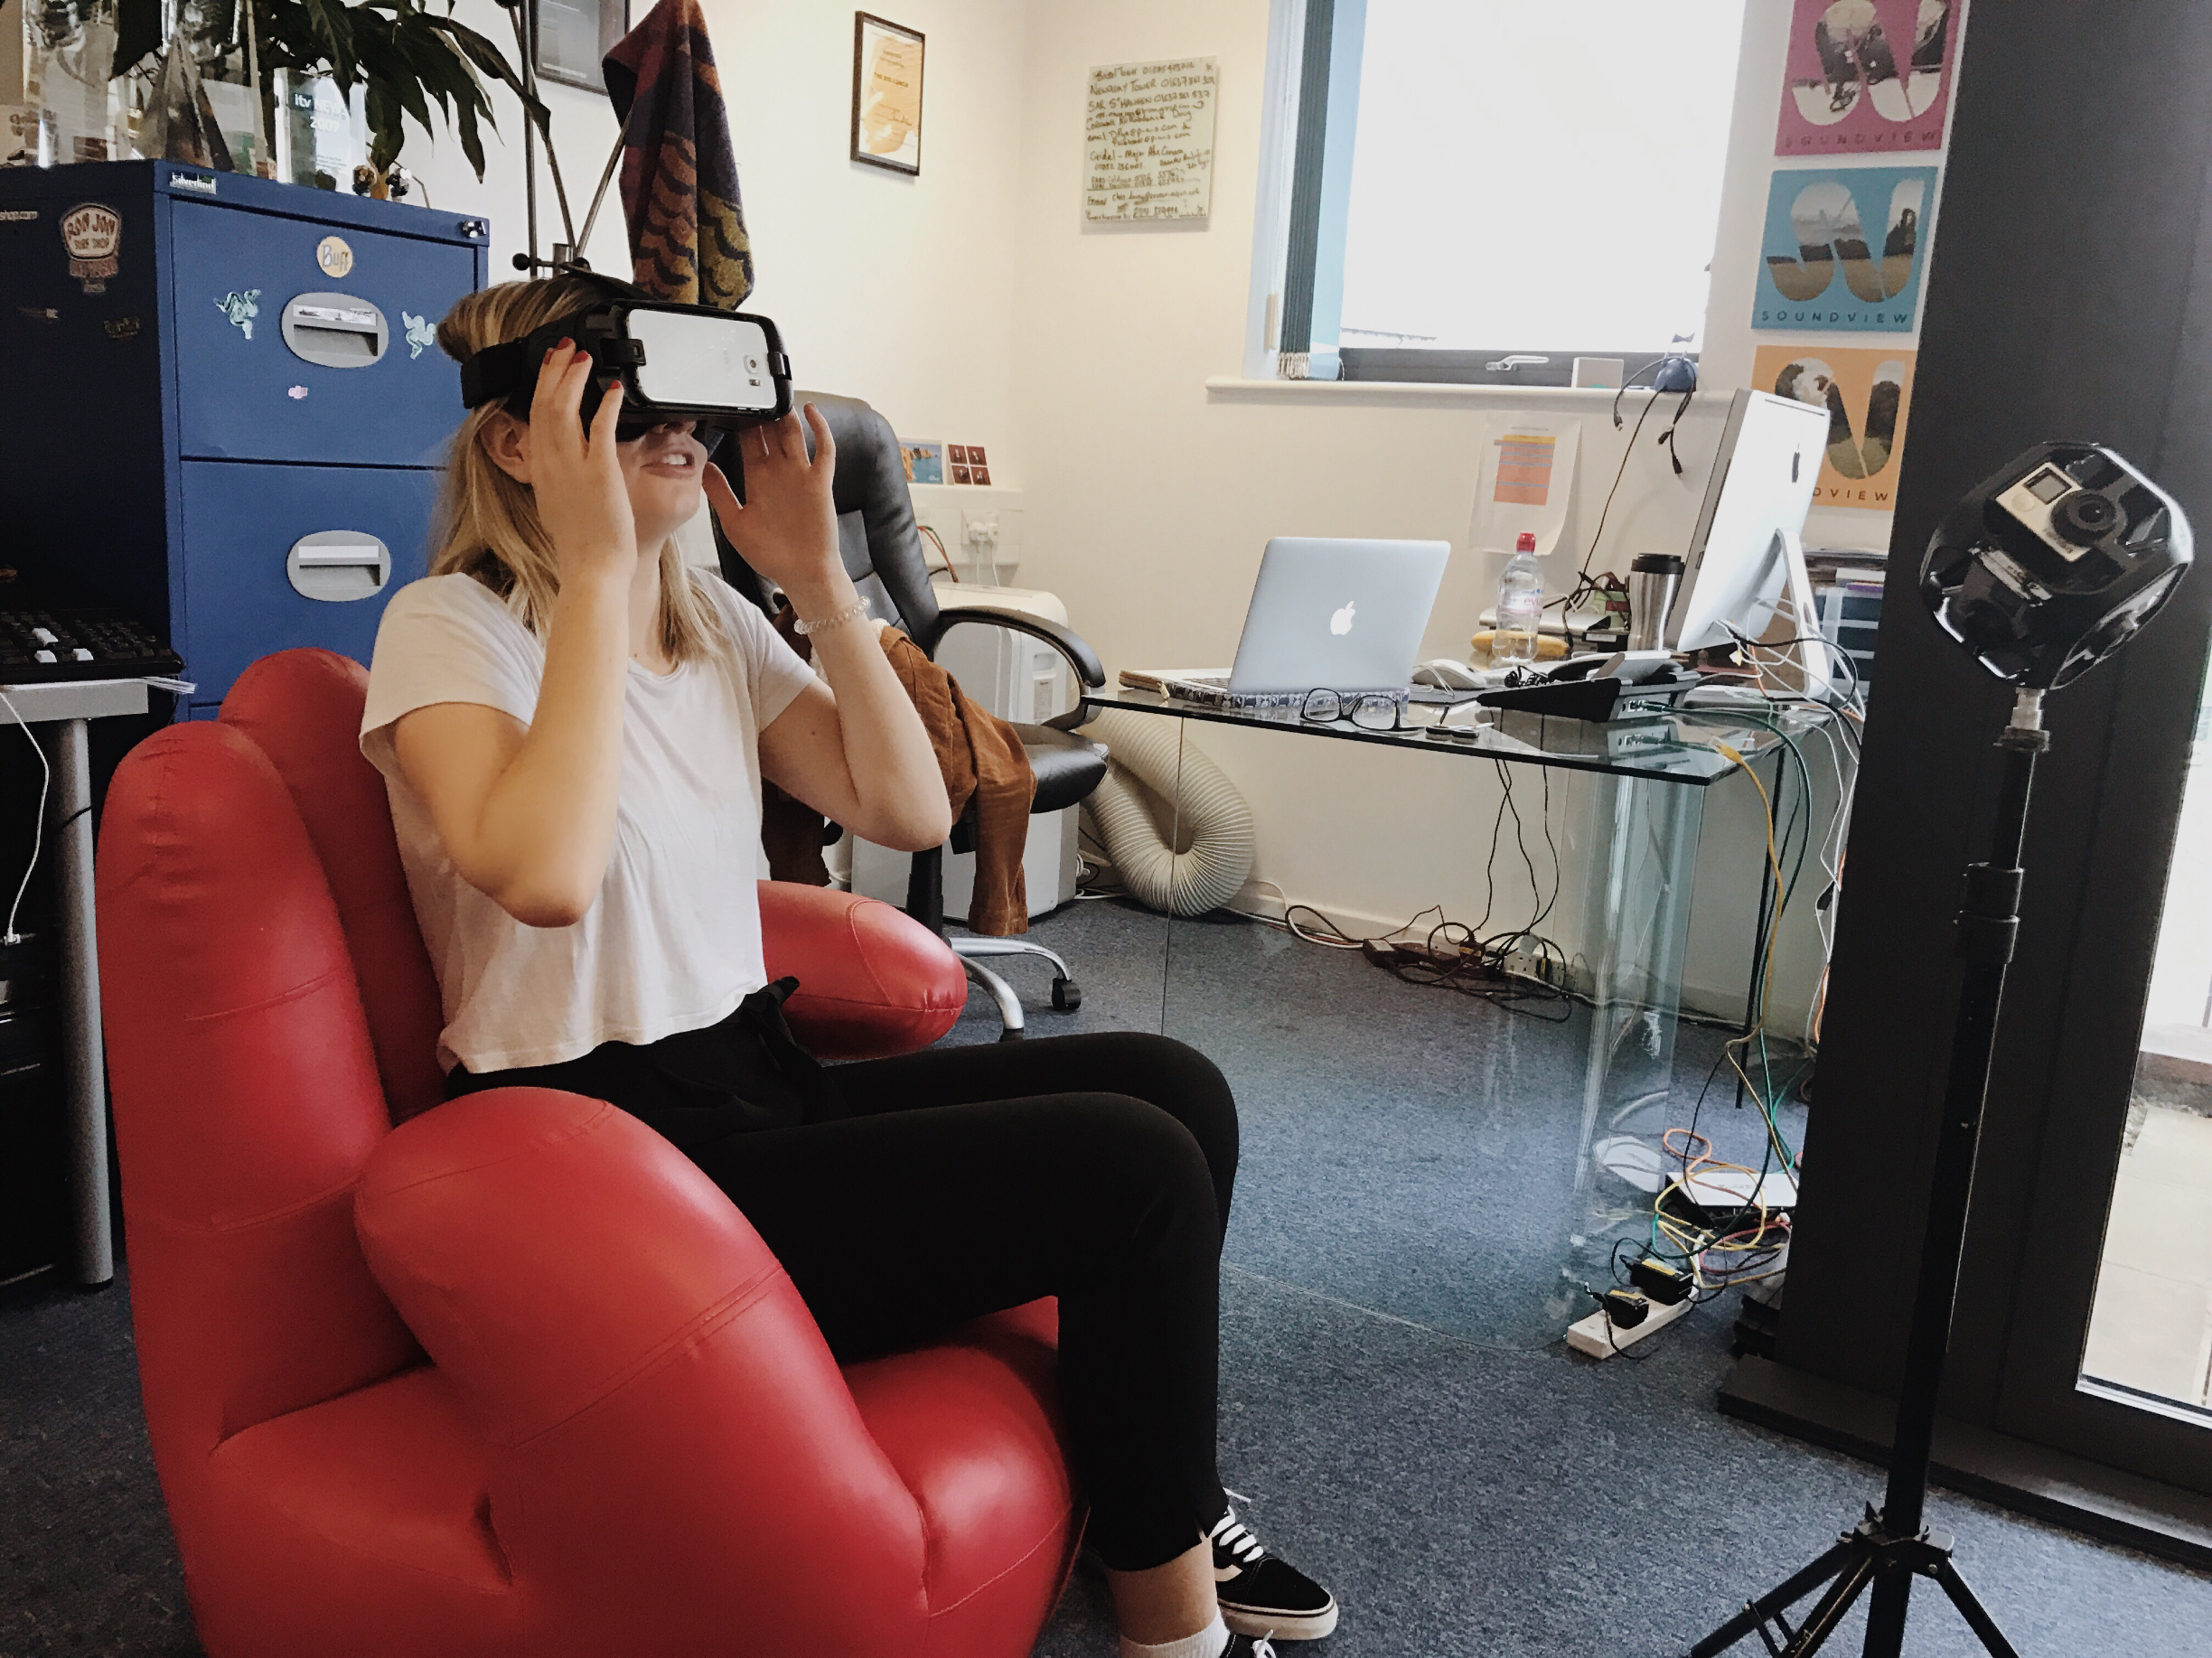 New 360 VR accessory comfortable experience. A red chair to experience comfort whilst checking out 360 VR.